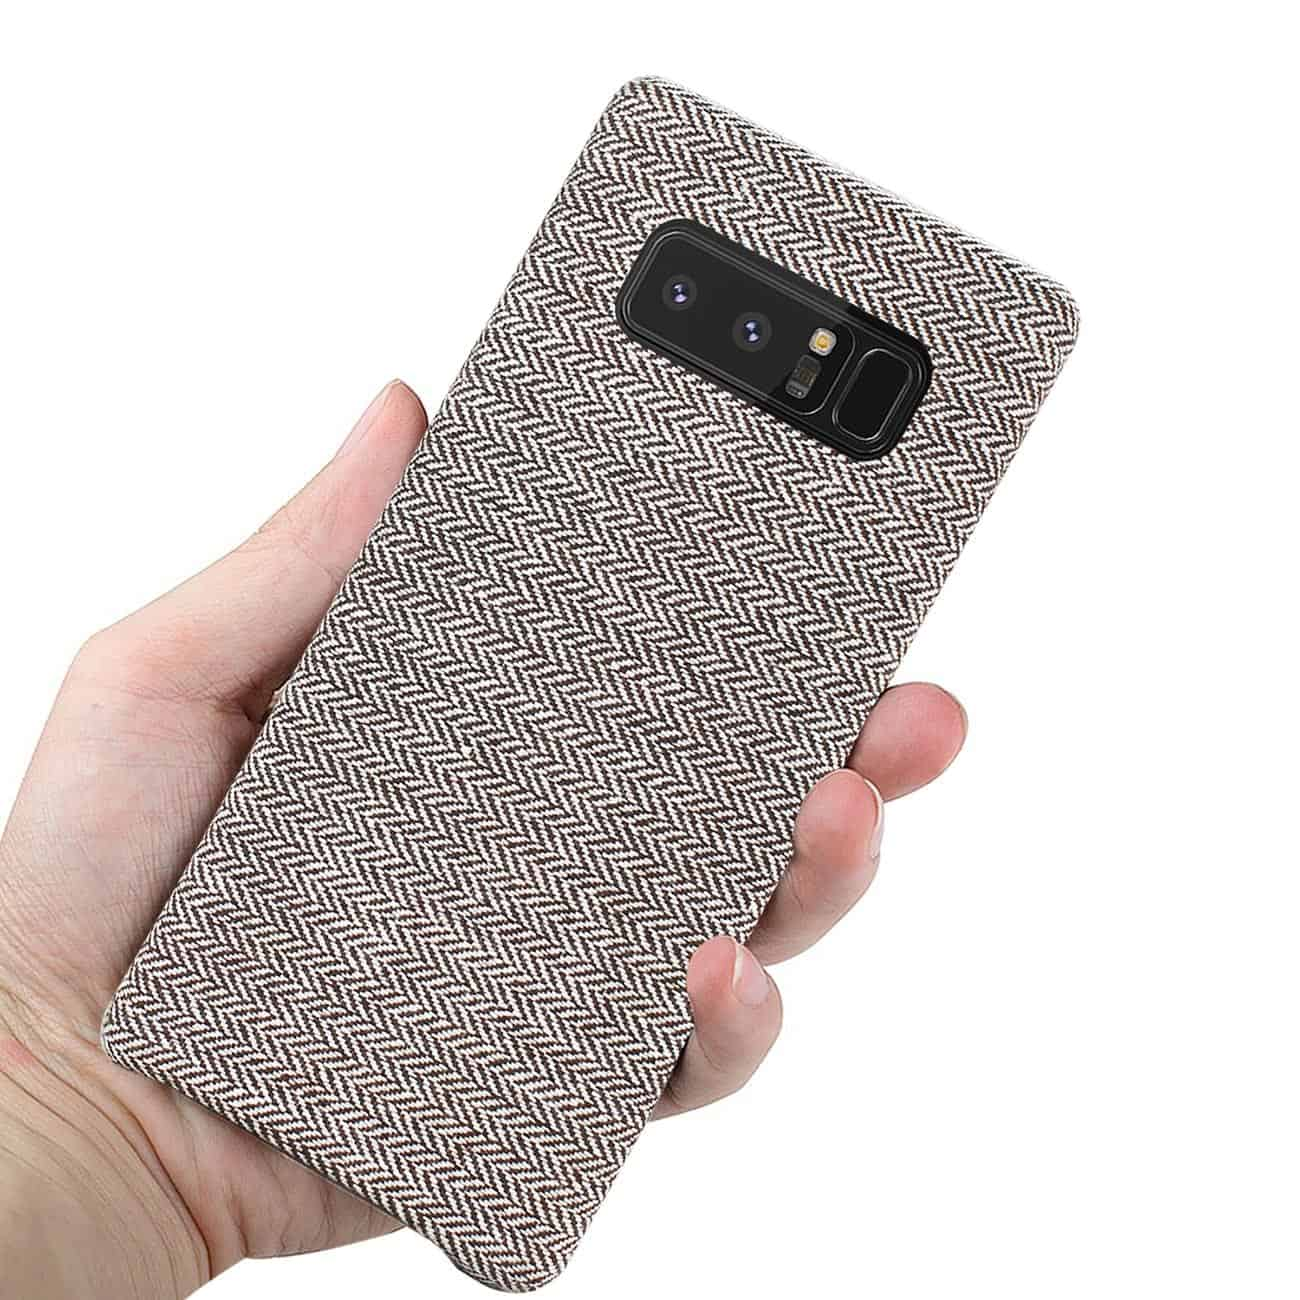 SAMSUNG GALAXY NOTE 8 HERRINGBONE FABRIC IN DARK GRAY